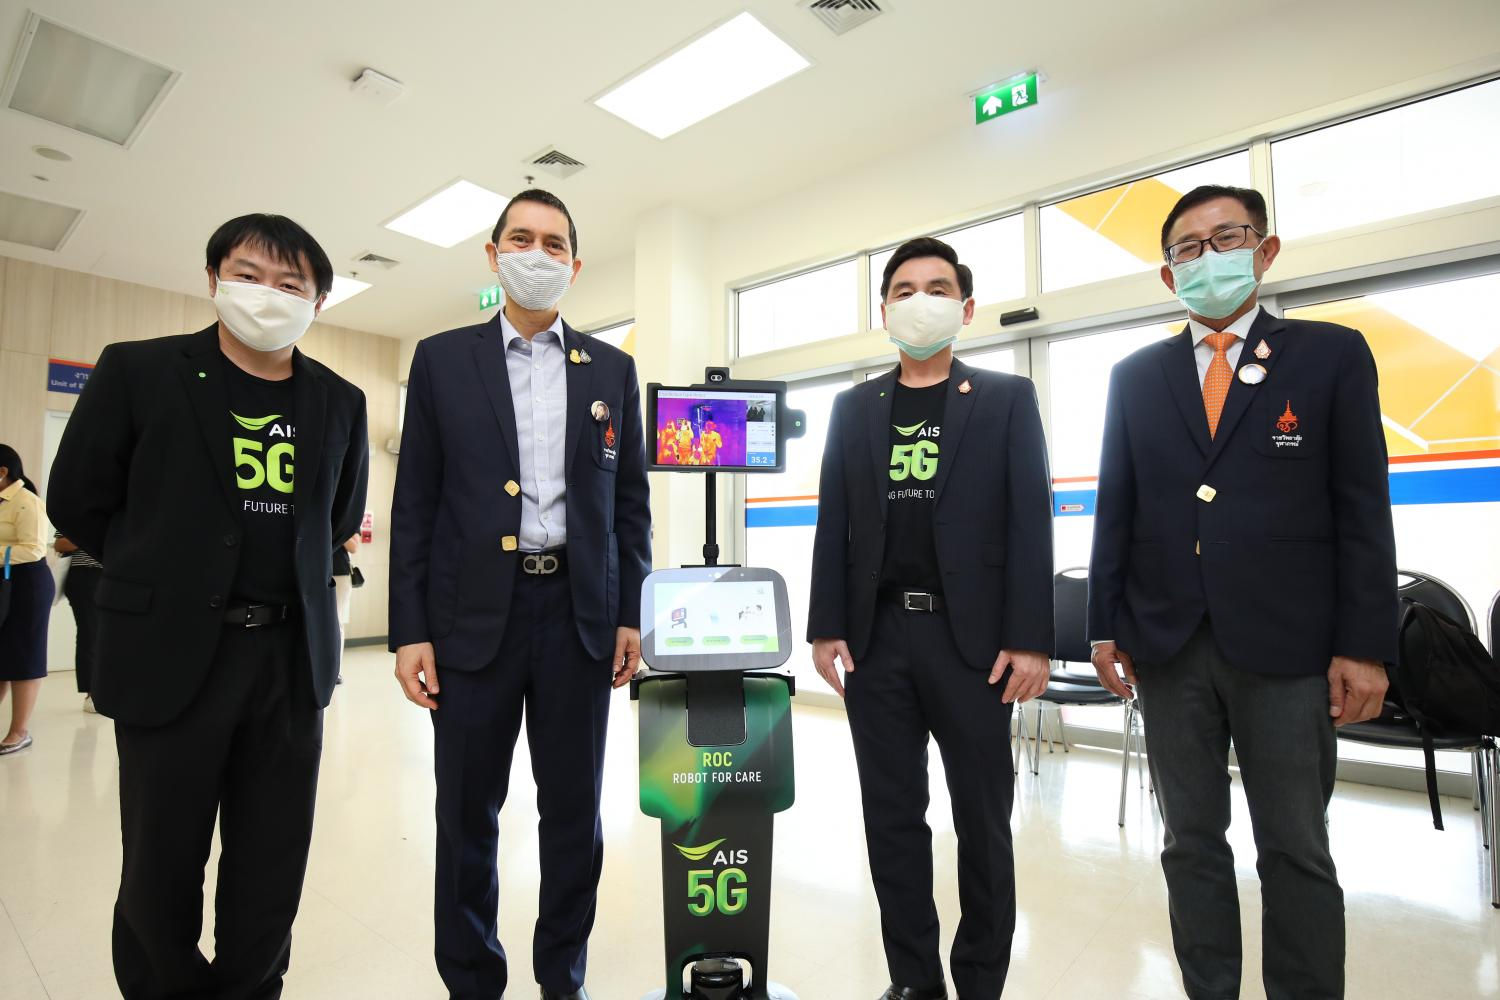 AIS applies 5G to Chulabhorn Hospital's picture